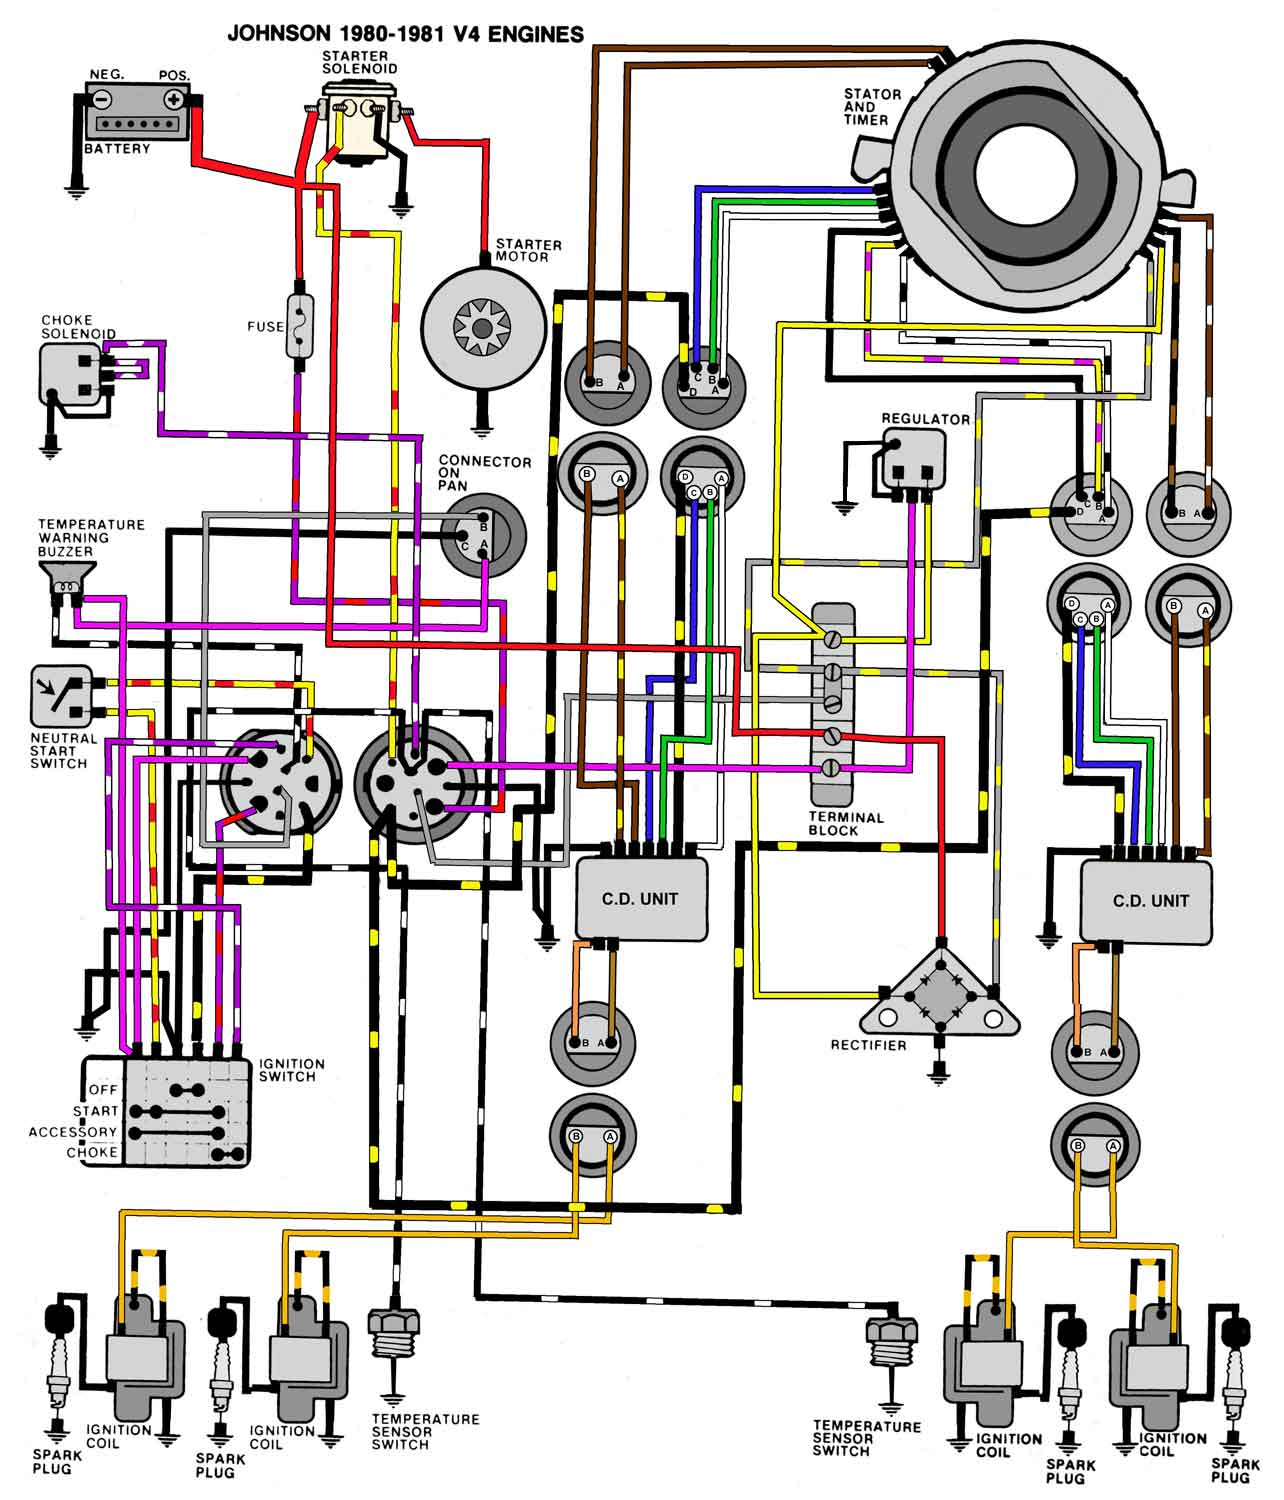 80_81_V4 mastertech marine evinrude johnson outboard wiring diagrams 70 HP Evinrude Schematic at aneh.co